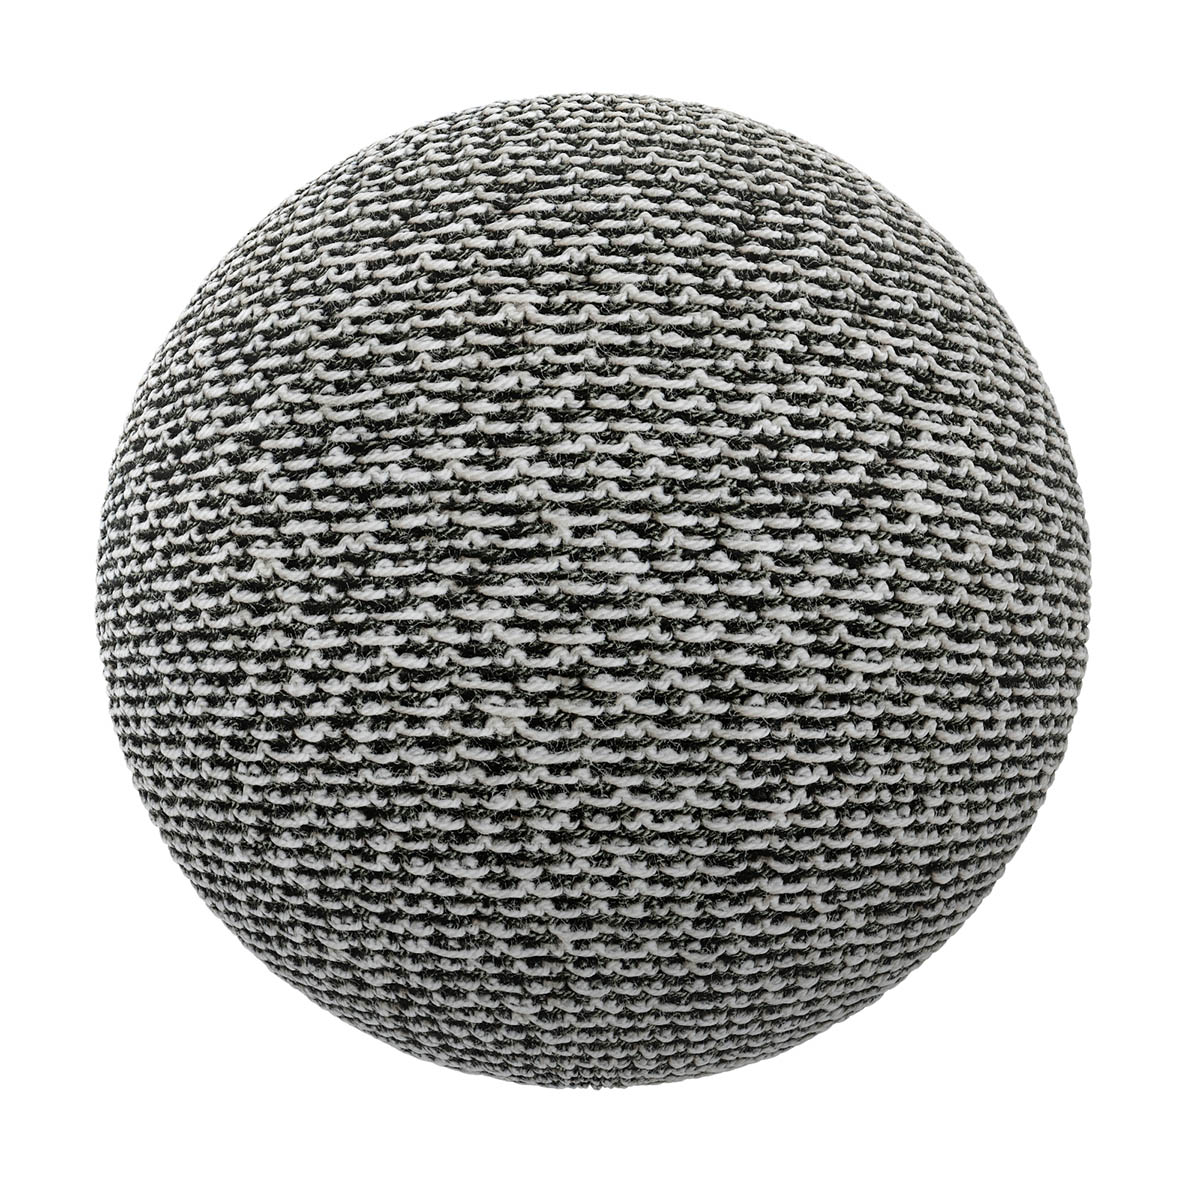 black and white fabric free pbr texture